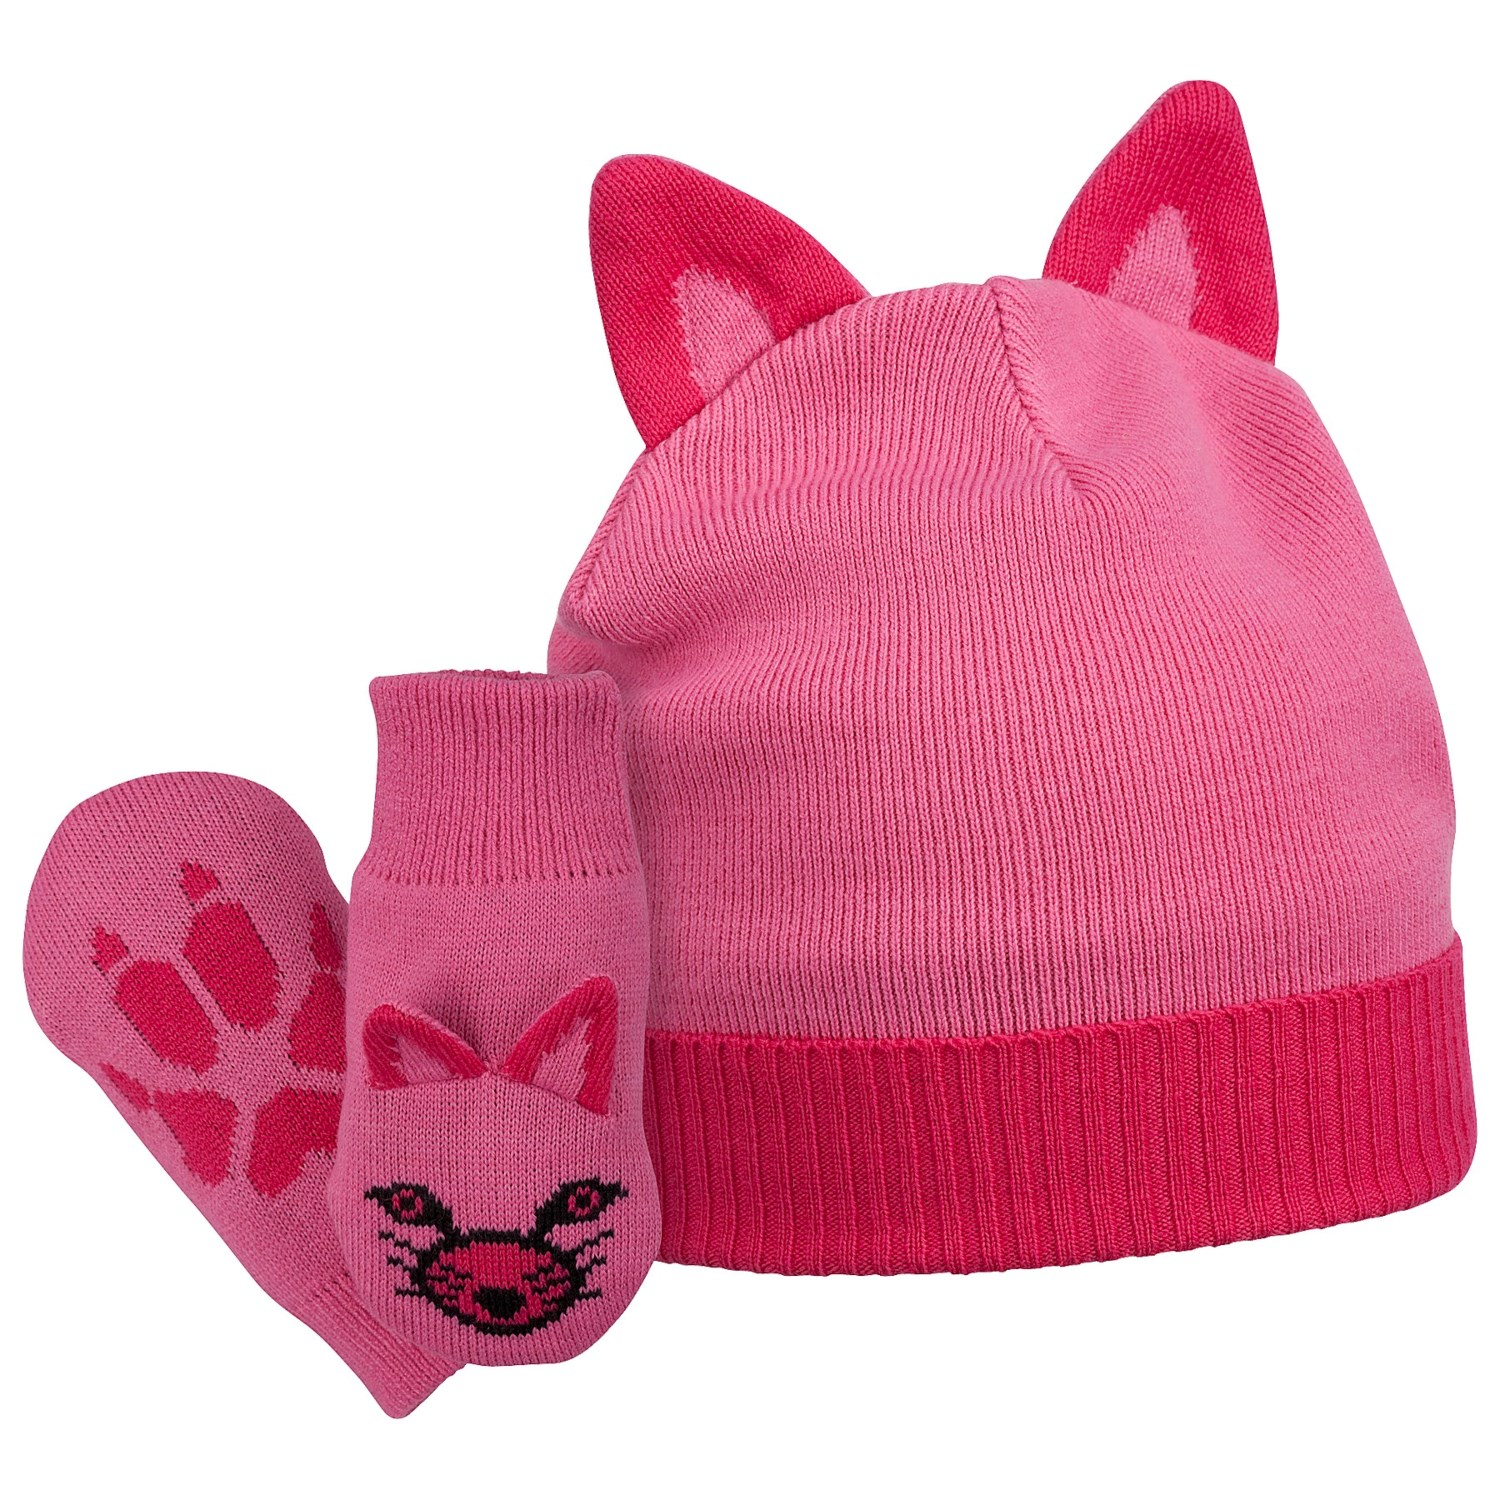 Find great deals on eBay for hats and mittens. Shop with confidence.